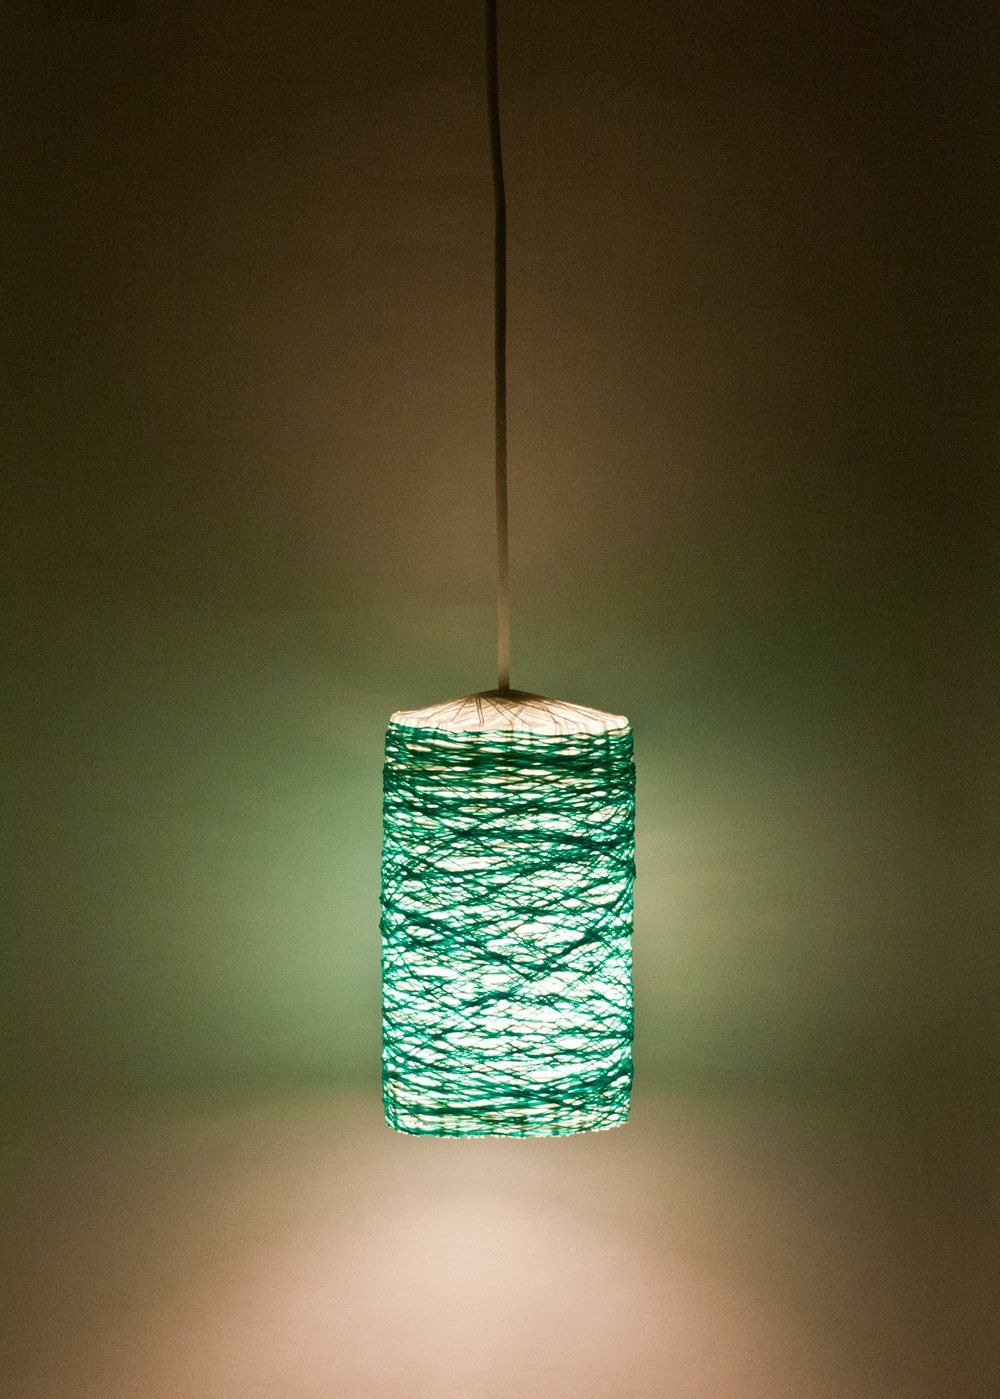 modern hanging lamp shades Popular items for handmade lampshade on ... for Handmade Lampshades Ideas  575cpg